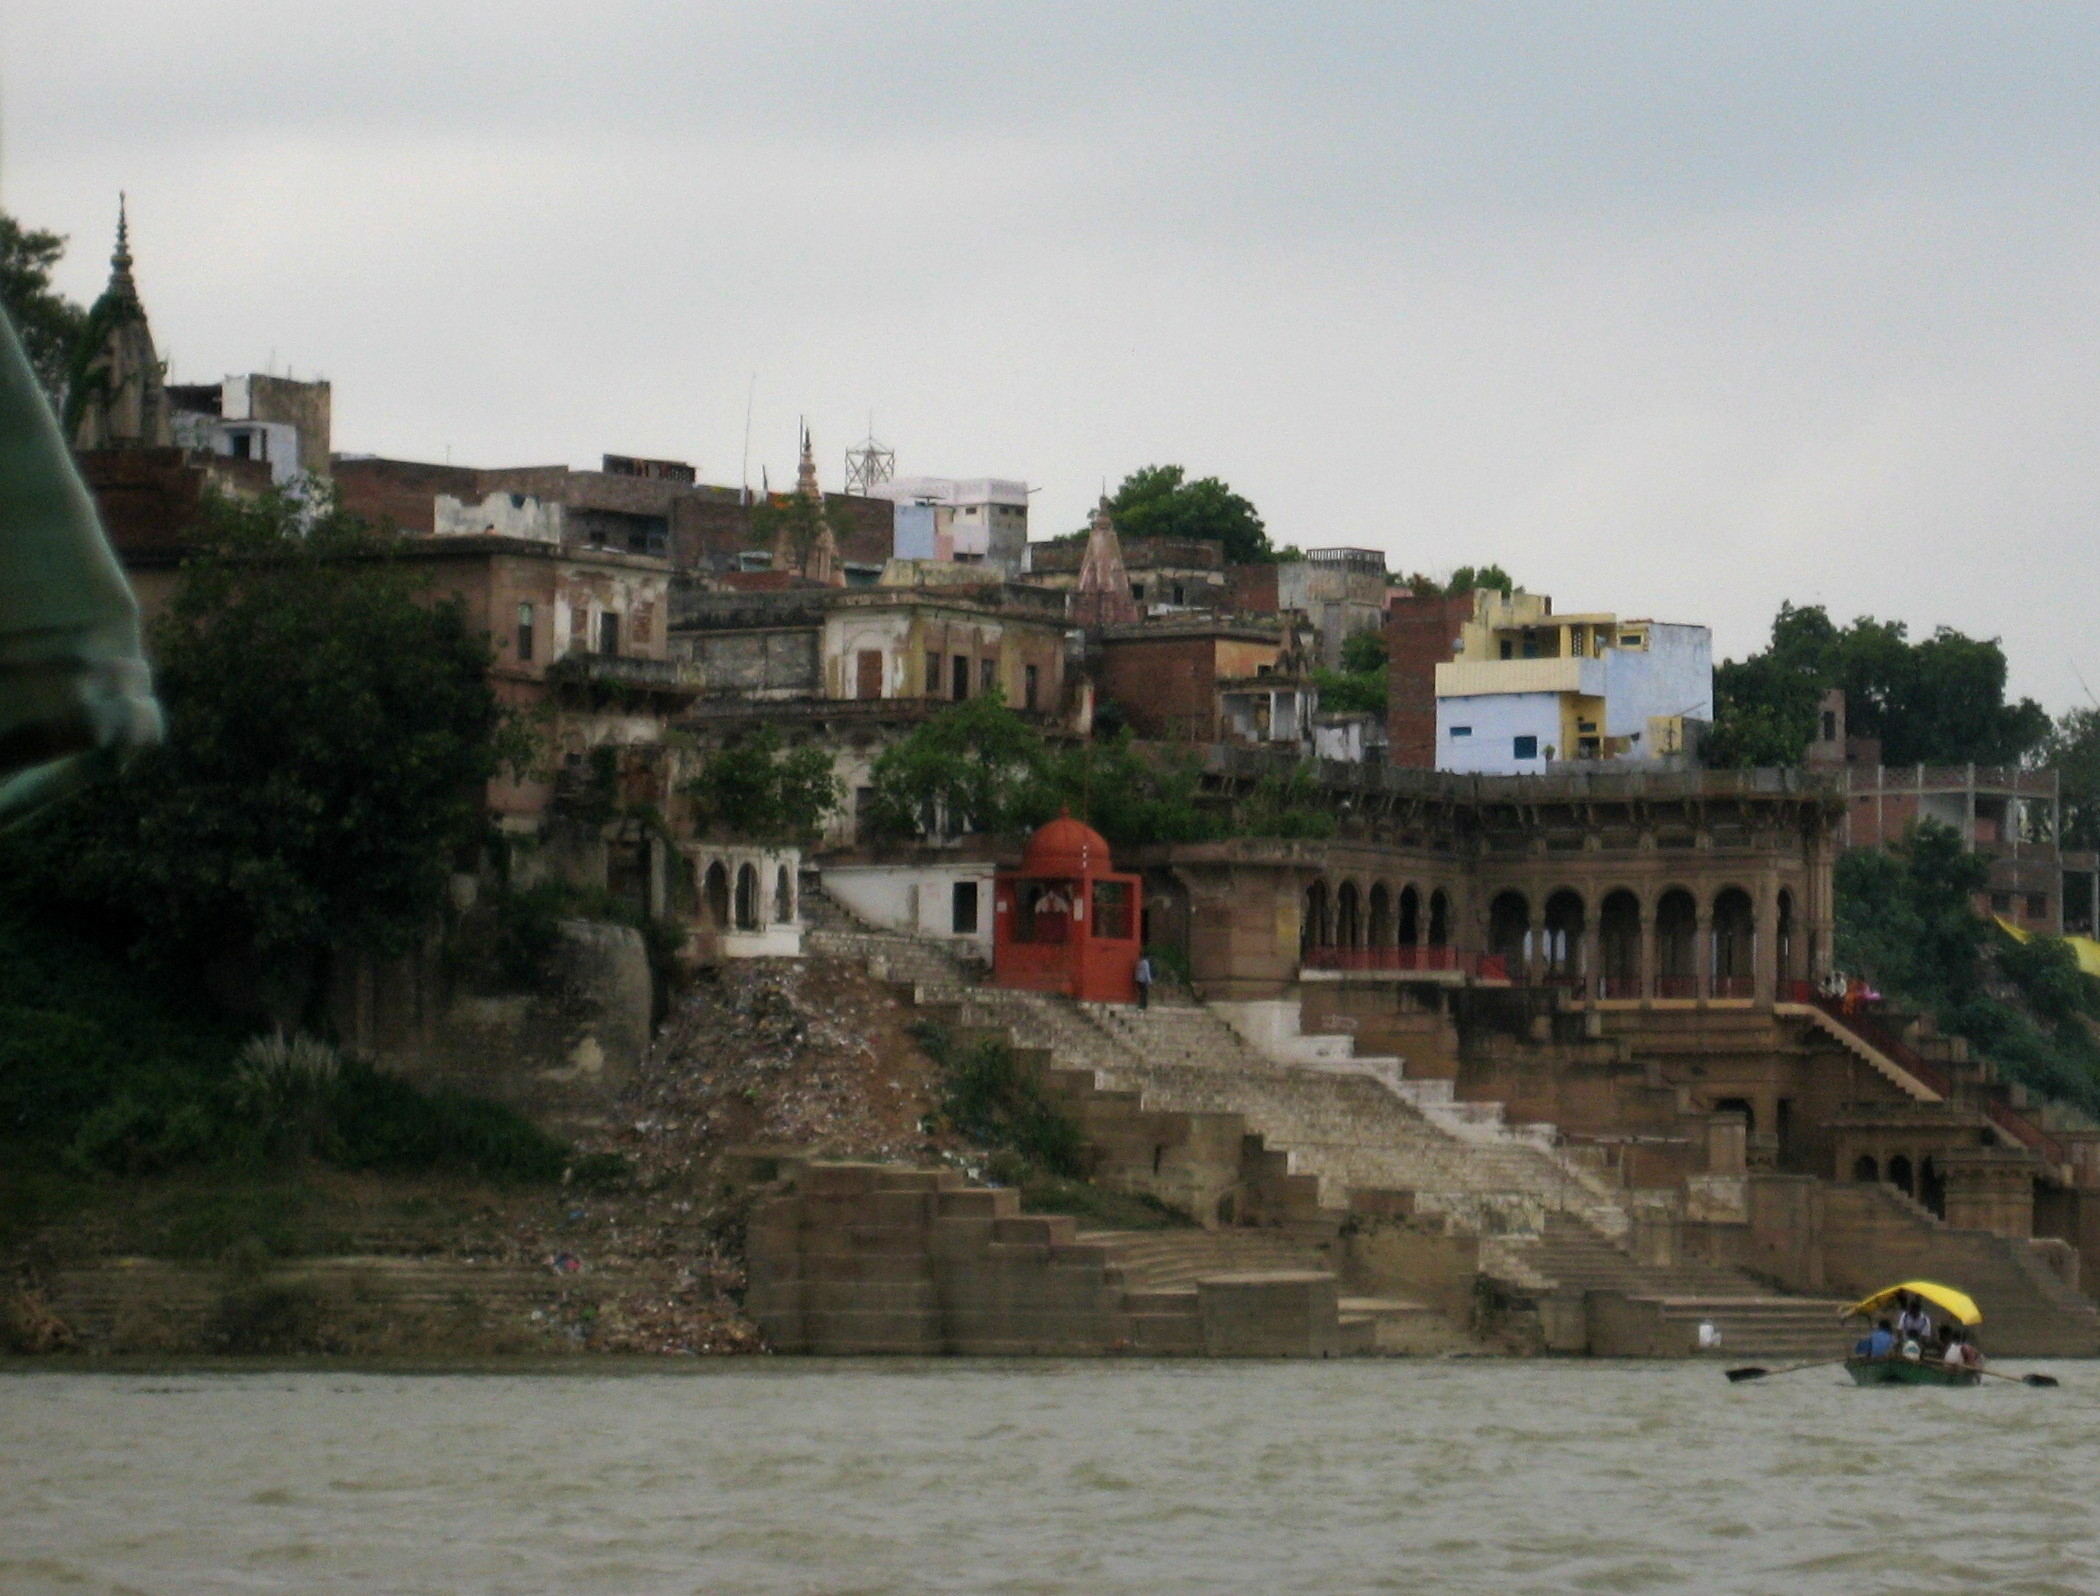 Mirzapur view from River Ganges.